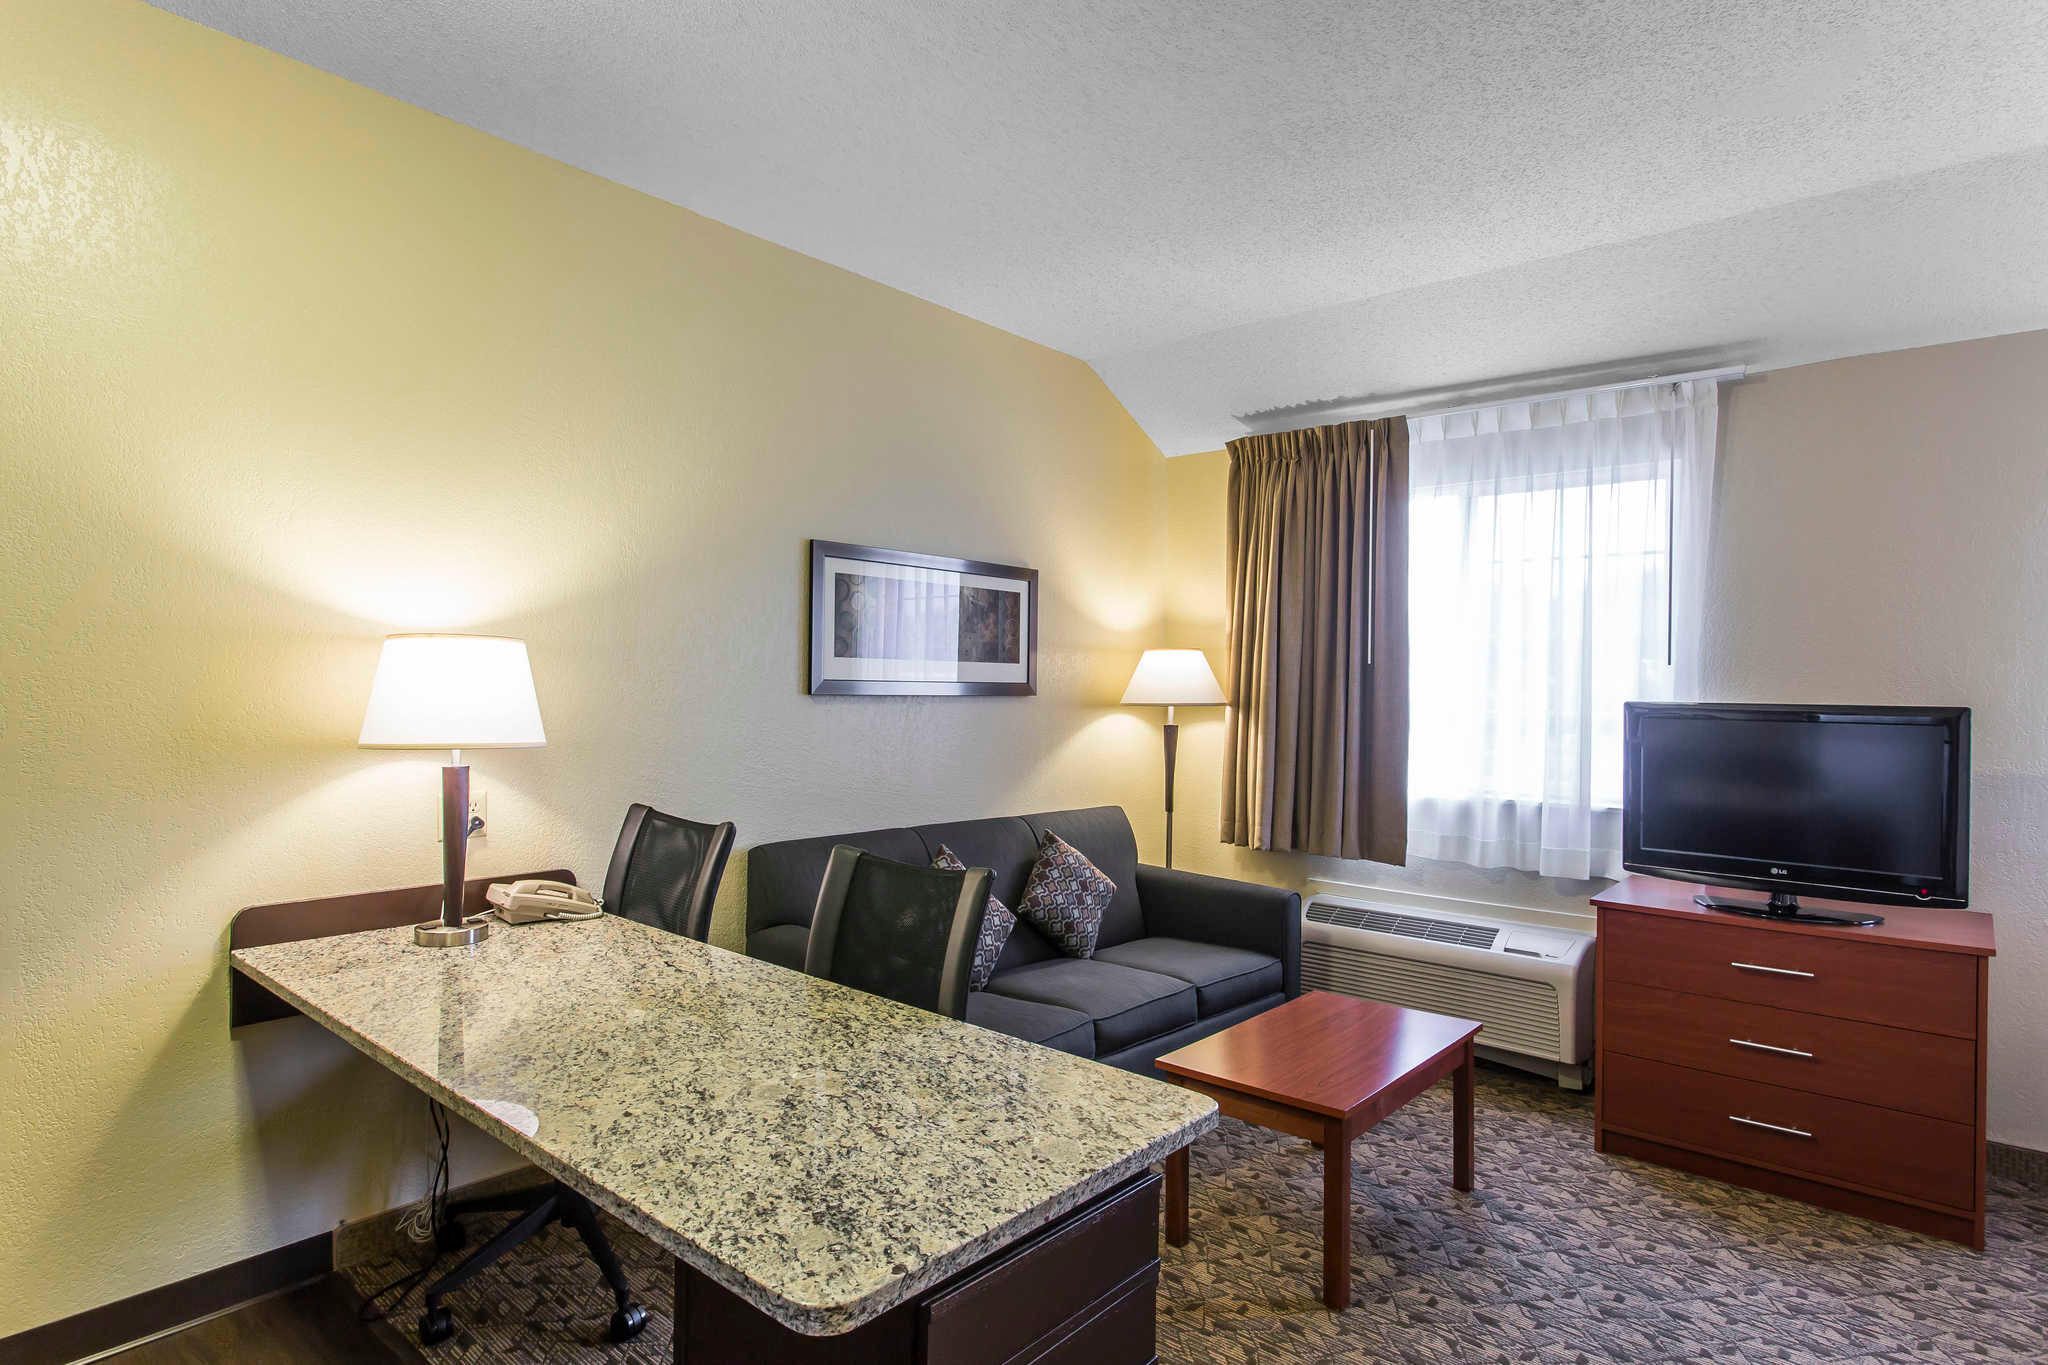 MainStay Suites image 8